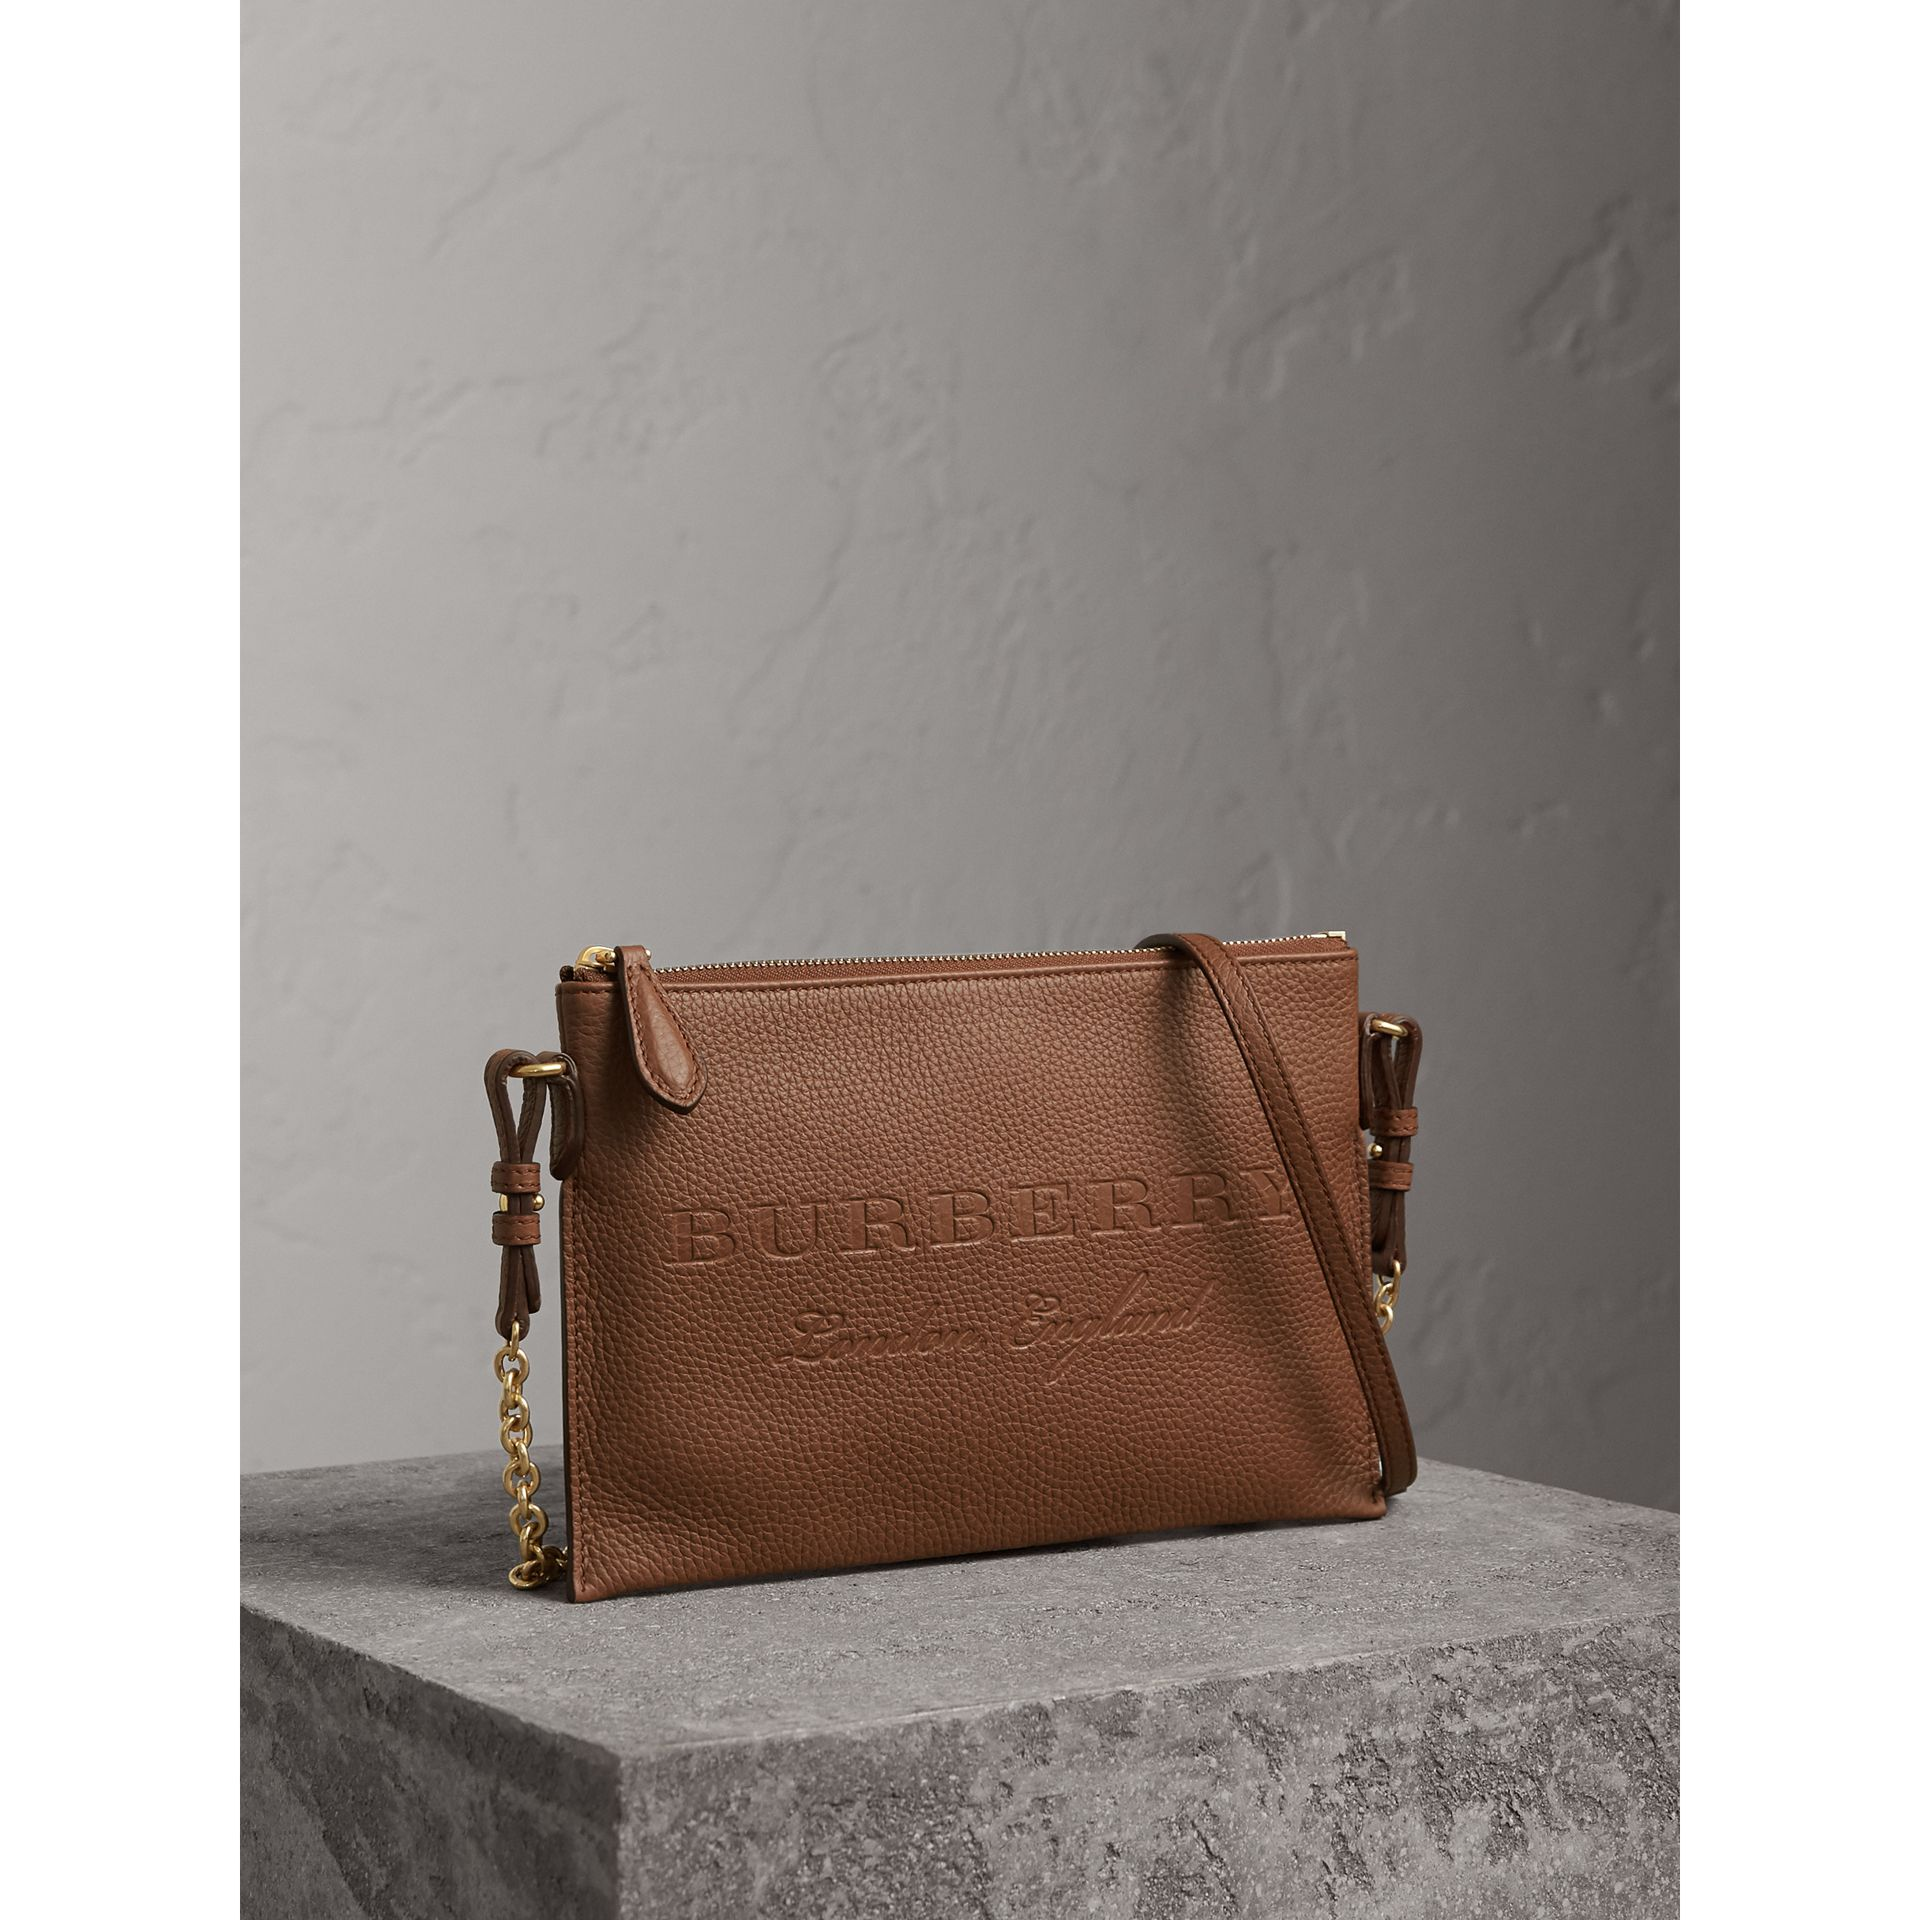 Embossed Leather Clutch Bag in Chestnut Brown - Women | Burberry - gallery image 6